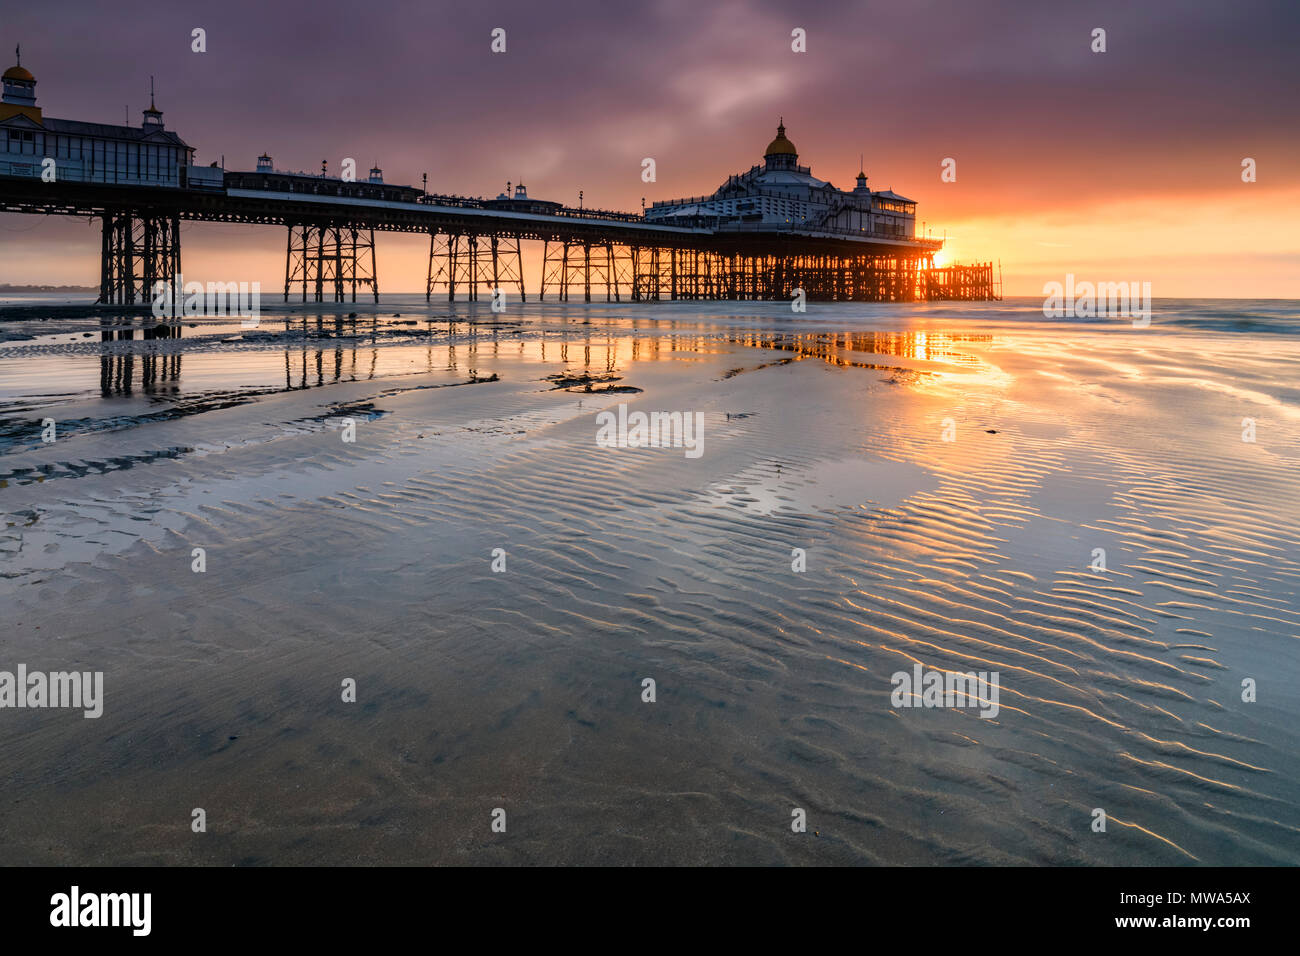 Eastbourne Pier in East Sussex captured at sunrise - Stock Image